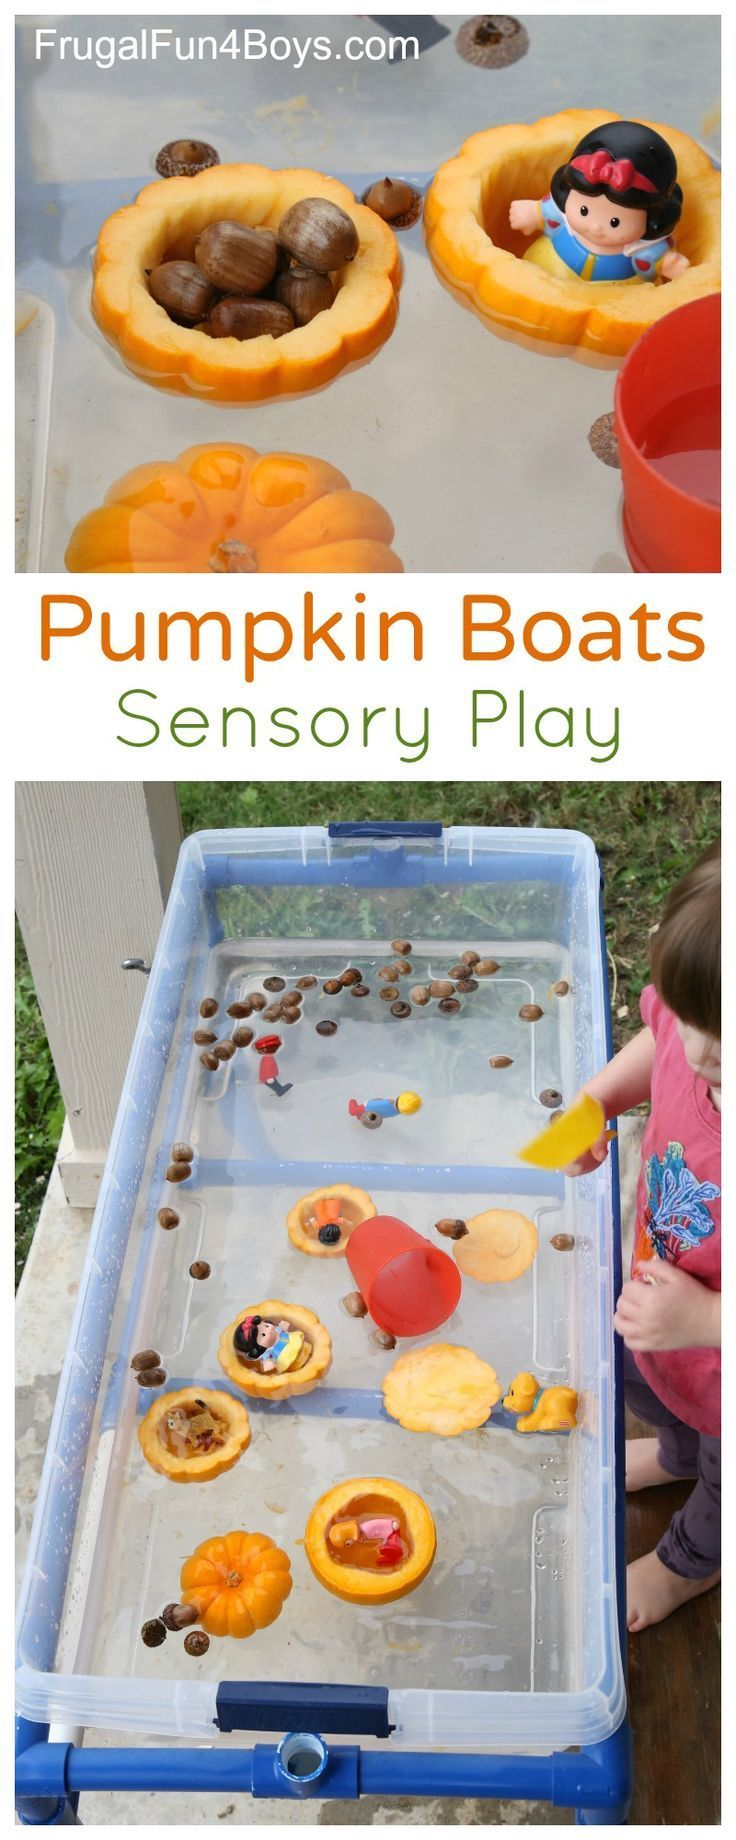 Pumpkin Boats Fall Sensory Play Idea - Preschoolers will love this!